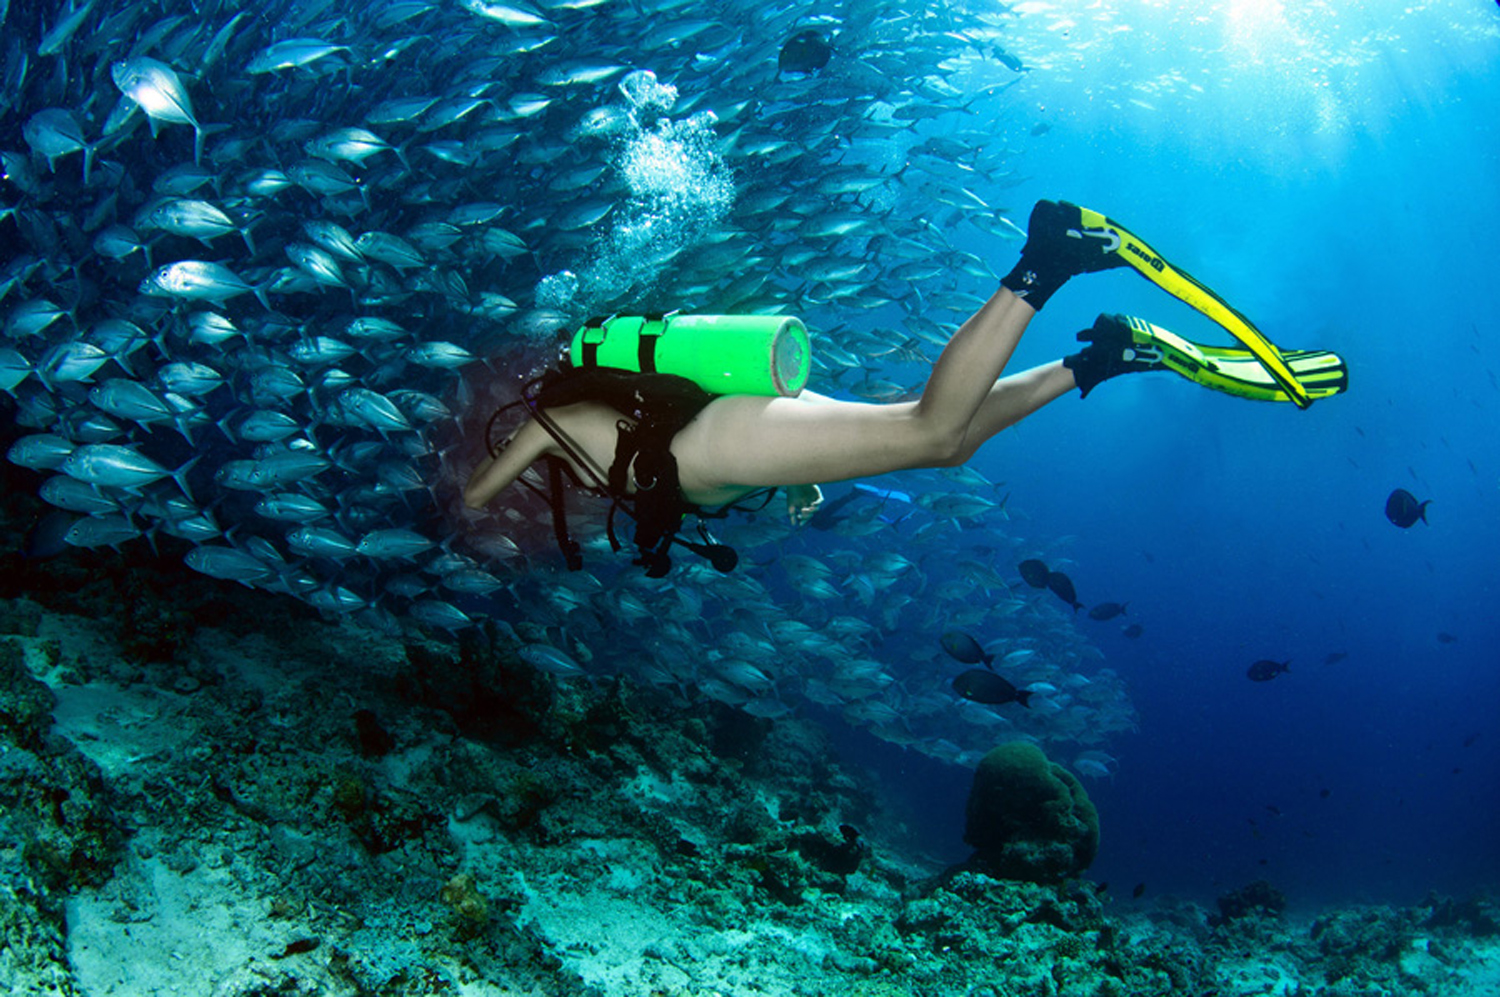 Scuba diving naked...not recommended